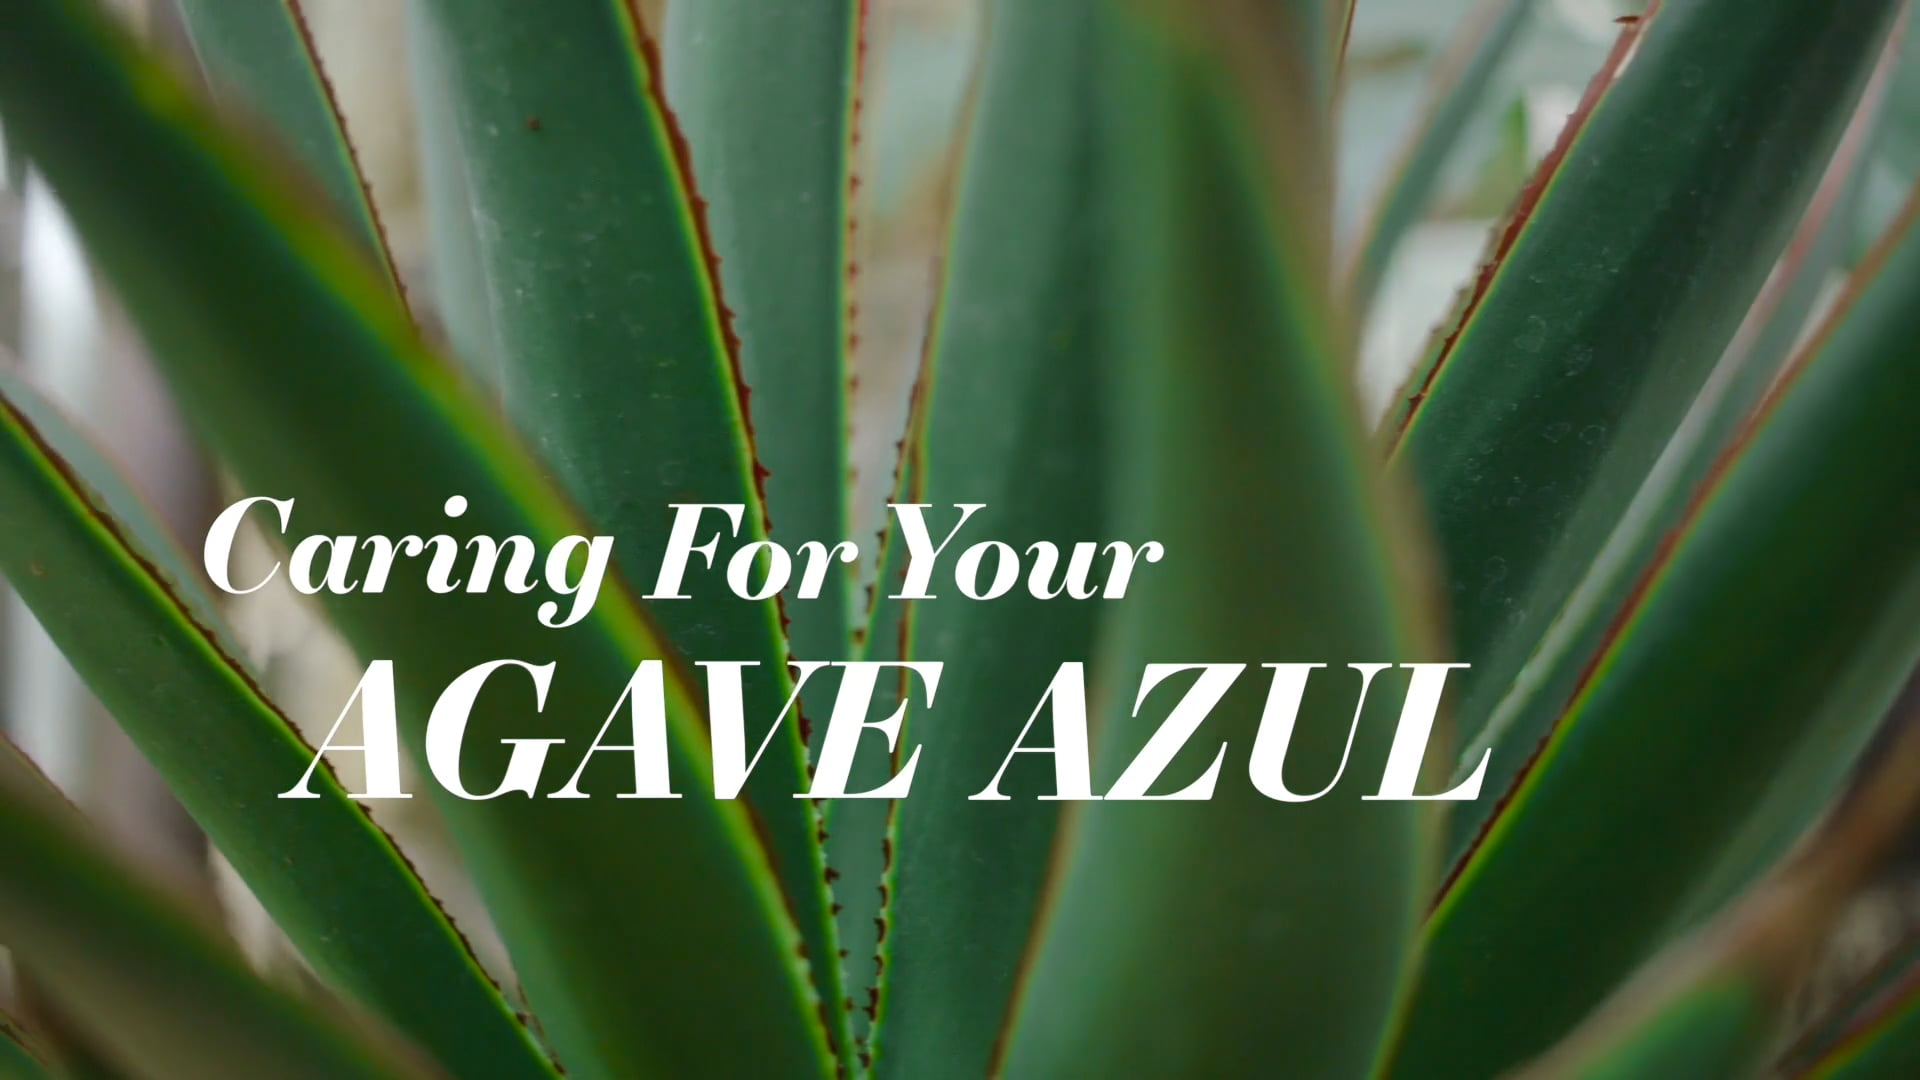 HOMESY X HILTON CARTER: Caring for Your Agave Azul